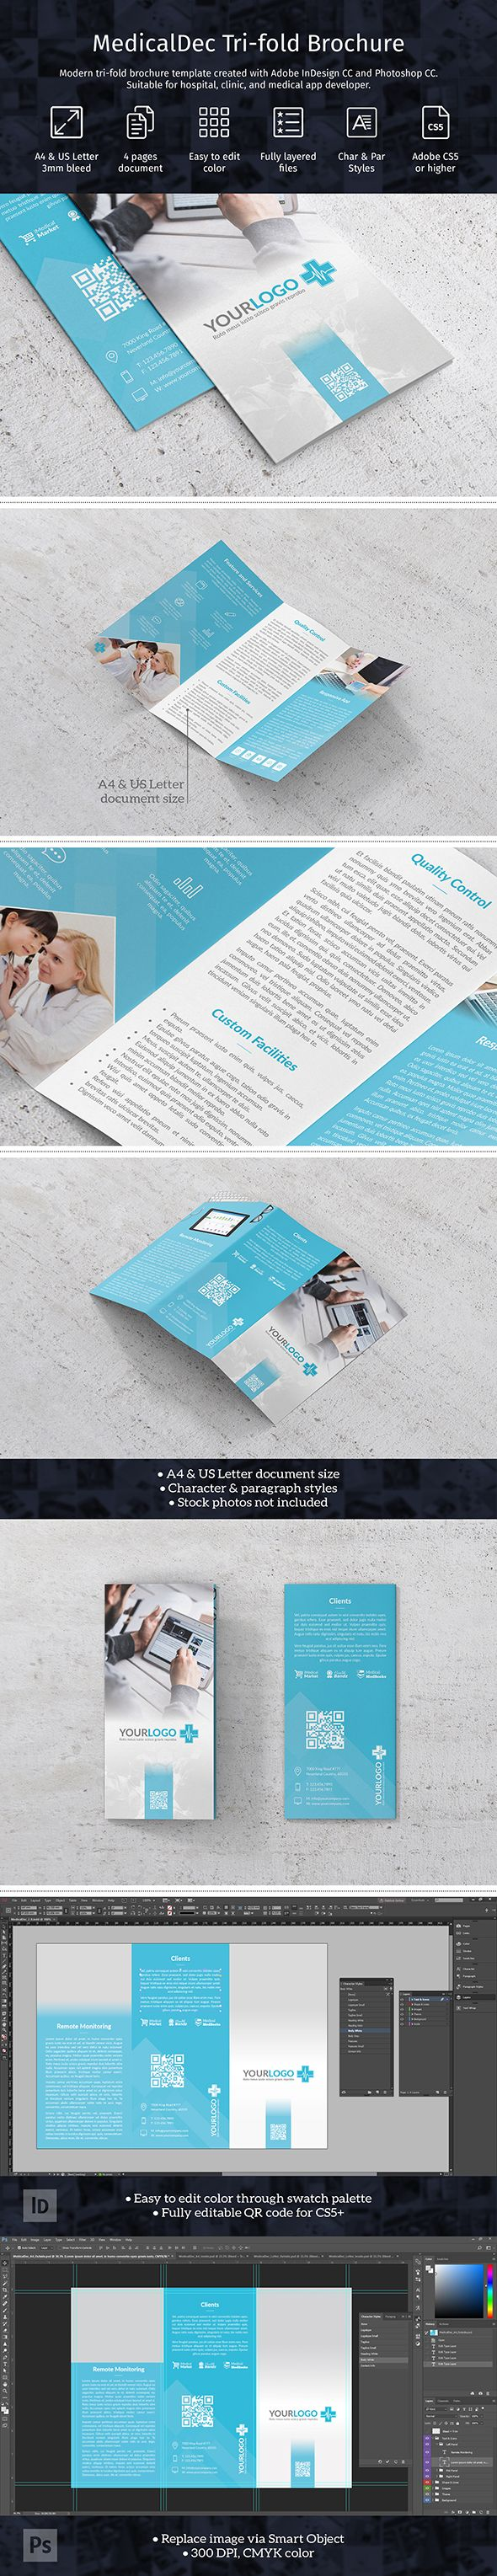 Modern tri fold brochure template in A4 and US Letter size created     Modern tri fold brochure template in A4 and US Letter size created with  Adobe InDesign CC and Photoshop CC  Suitable for hospital  clinic  and  medical app